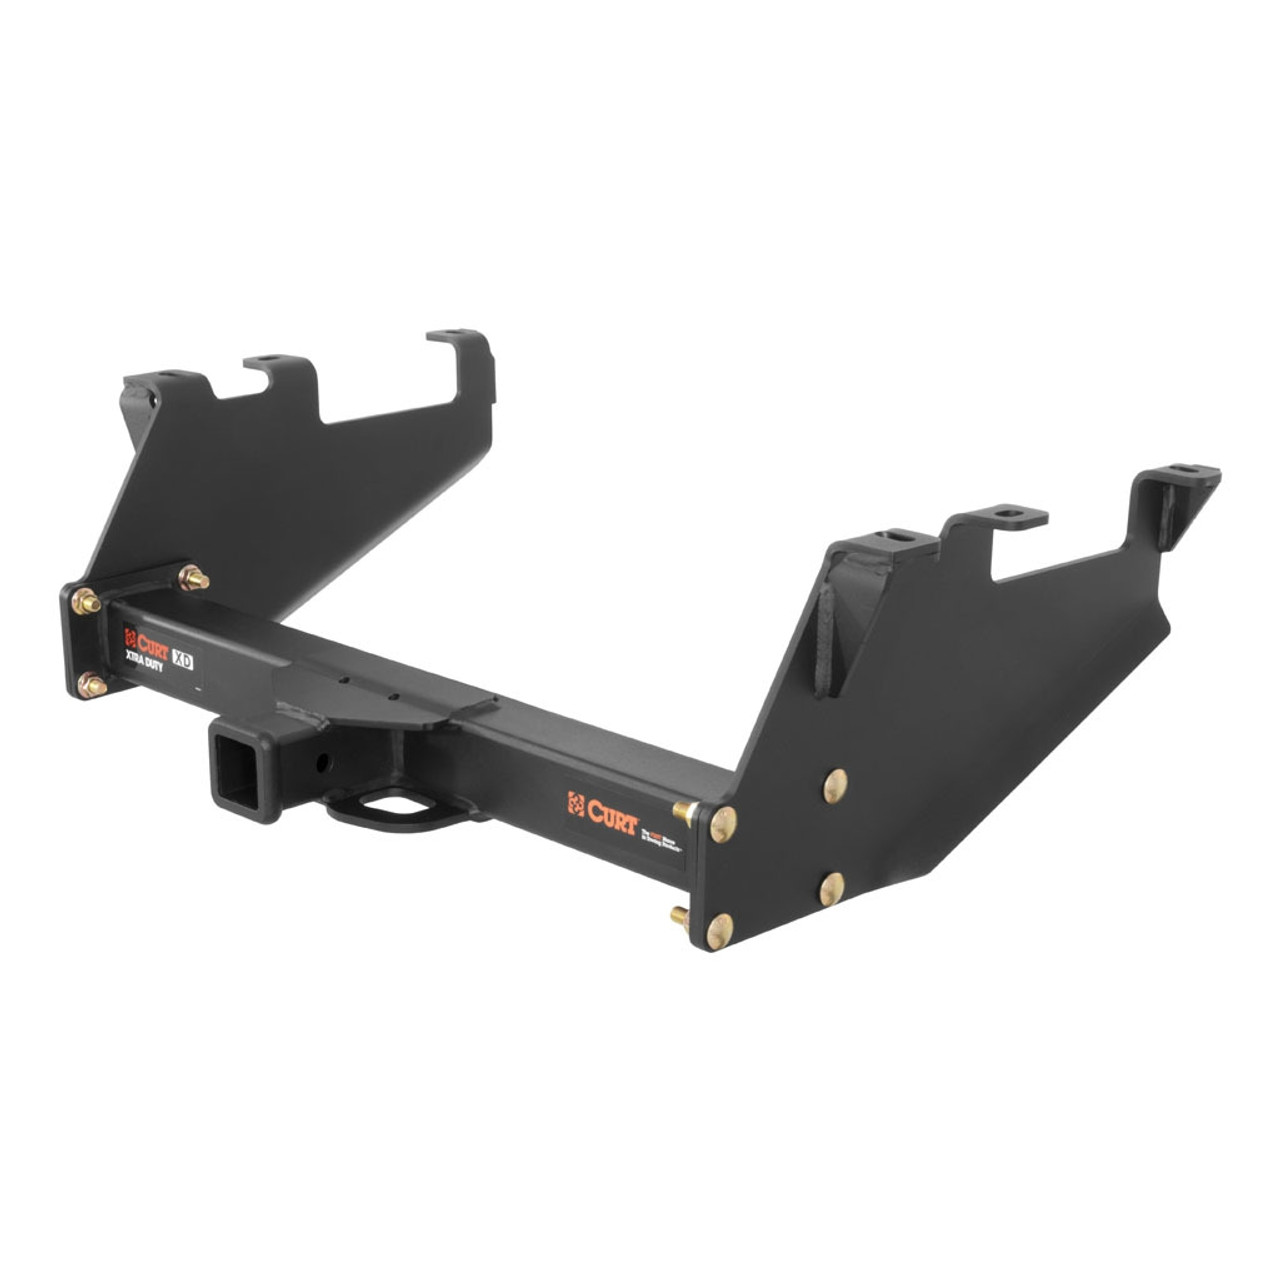 Commercial Duty Trailer Hitches